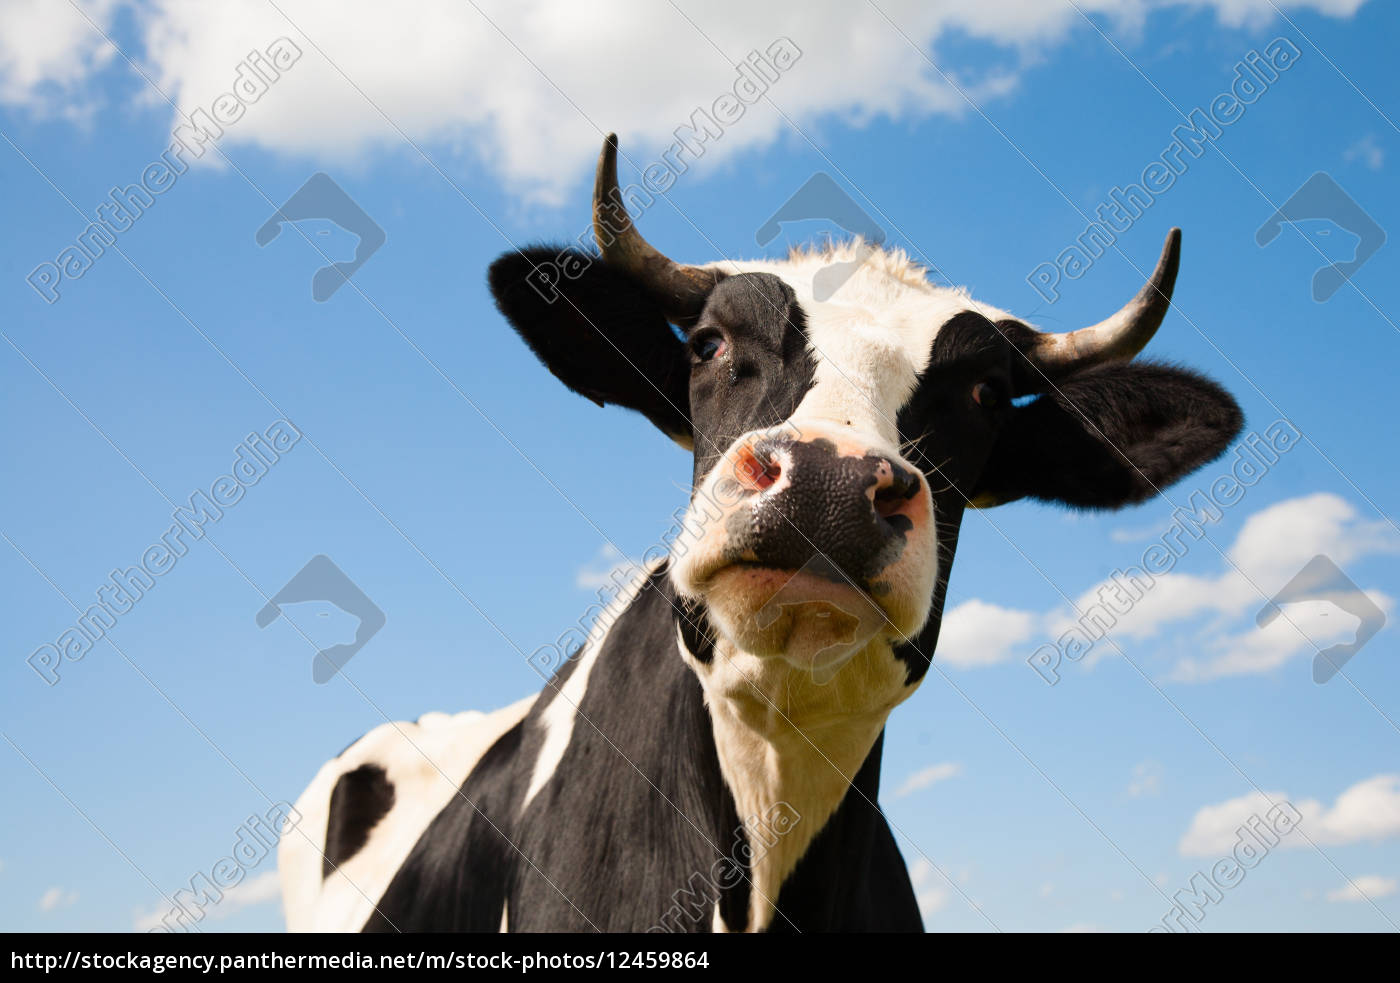 dutch, cow - 12459864